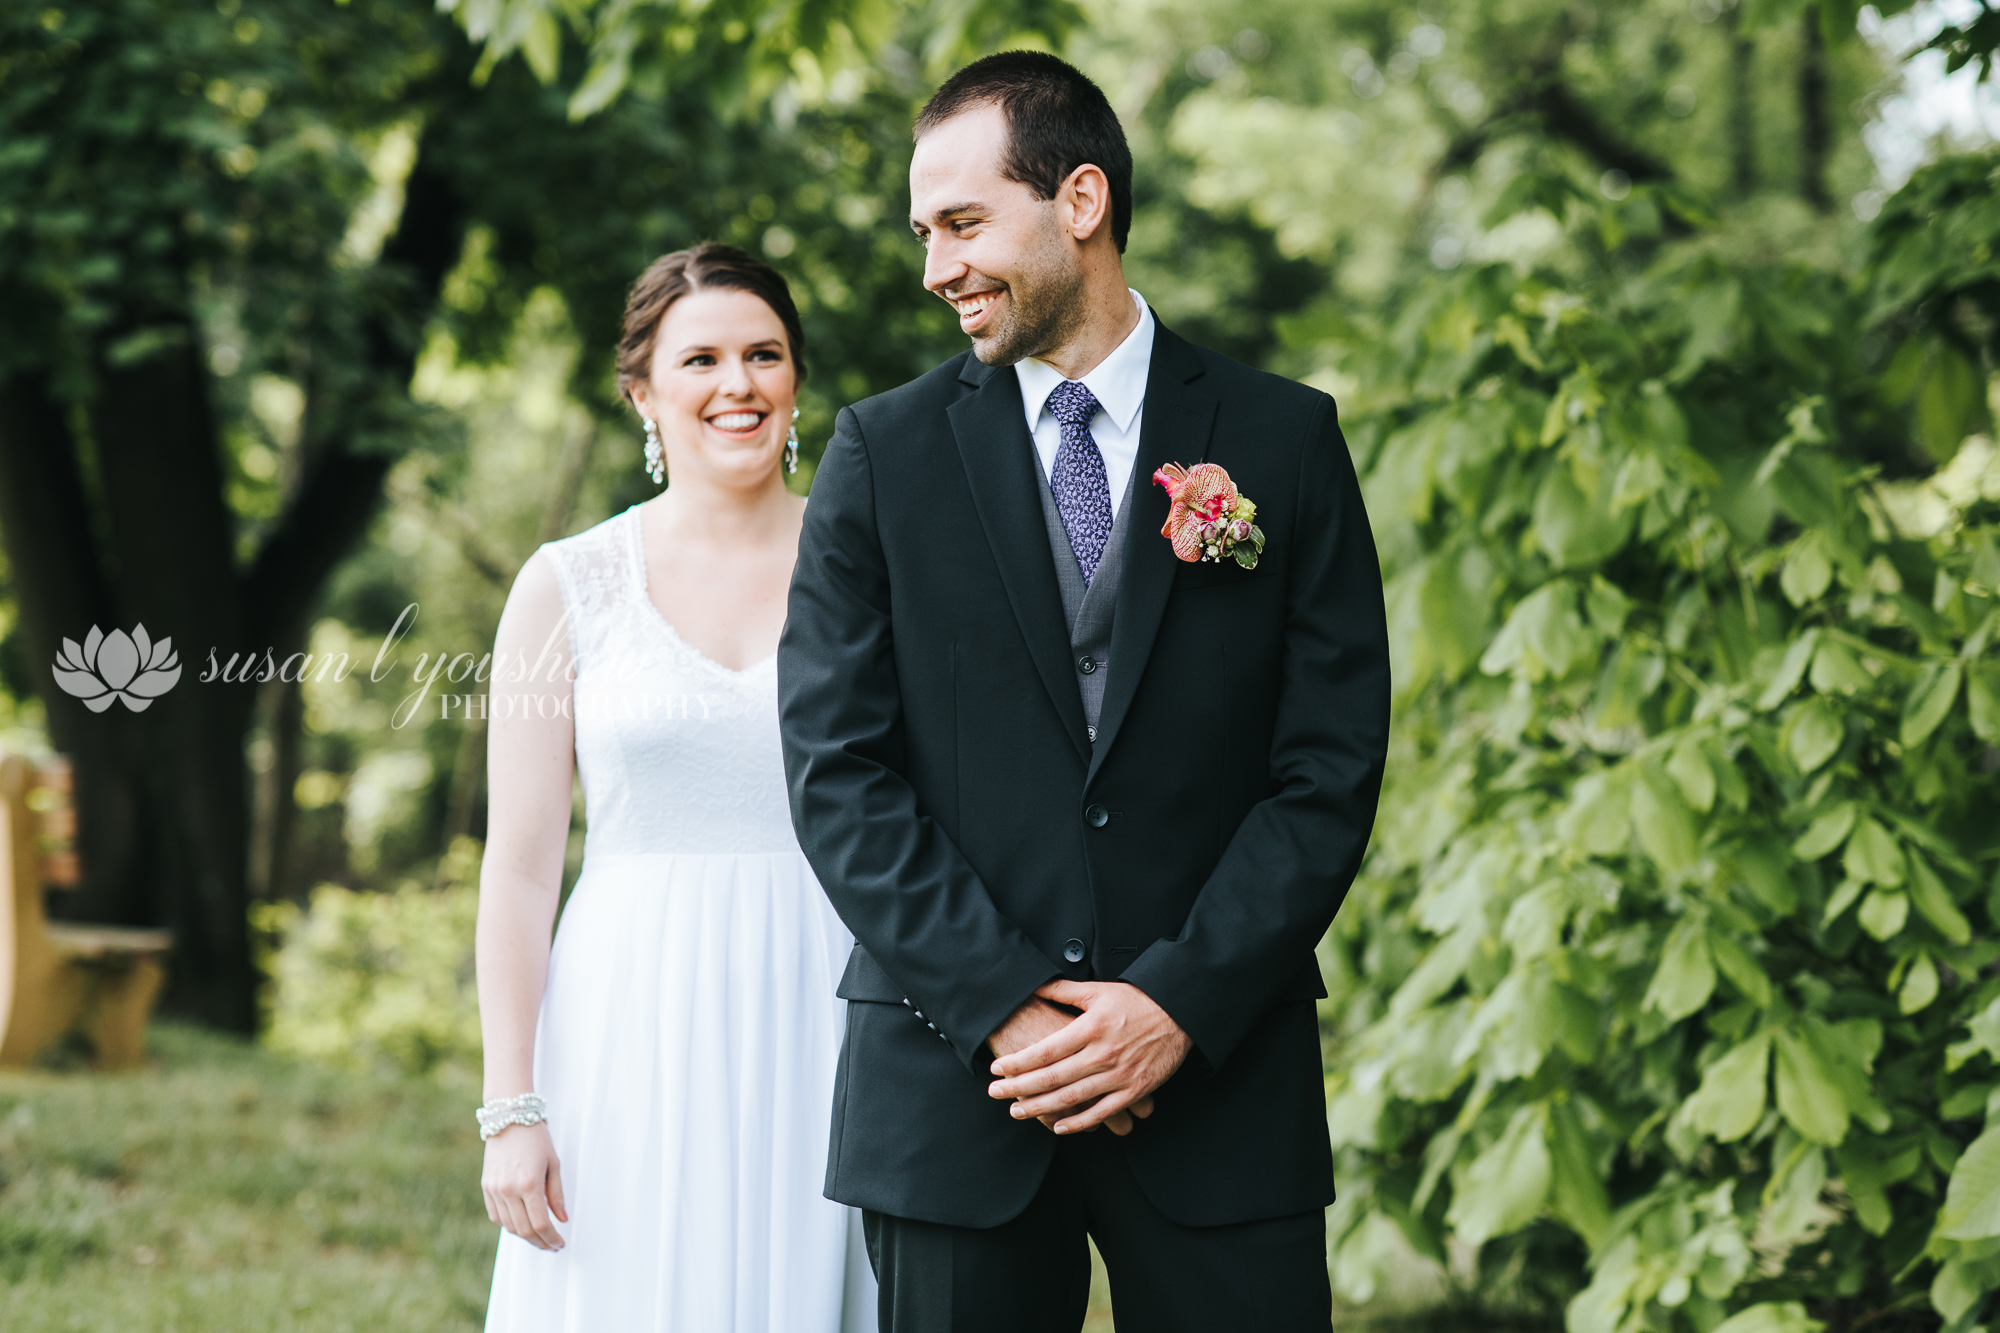 Adena and  Erik Wedding 05-17-2019 SLY Photography-18.jpg